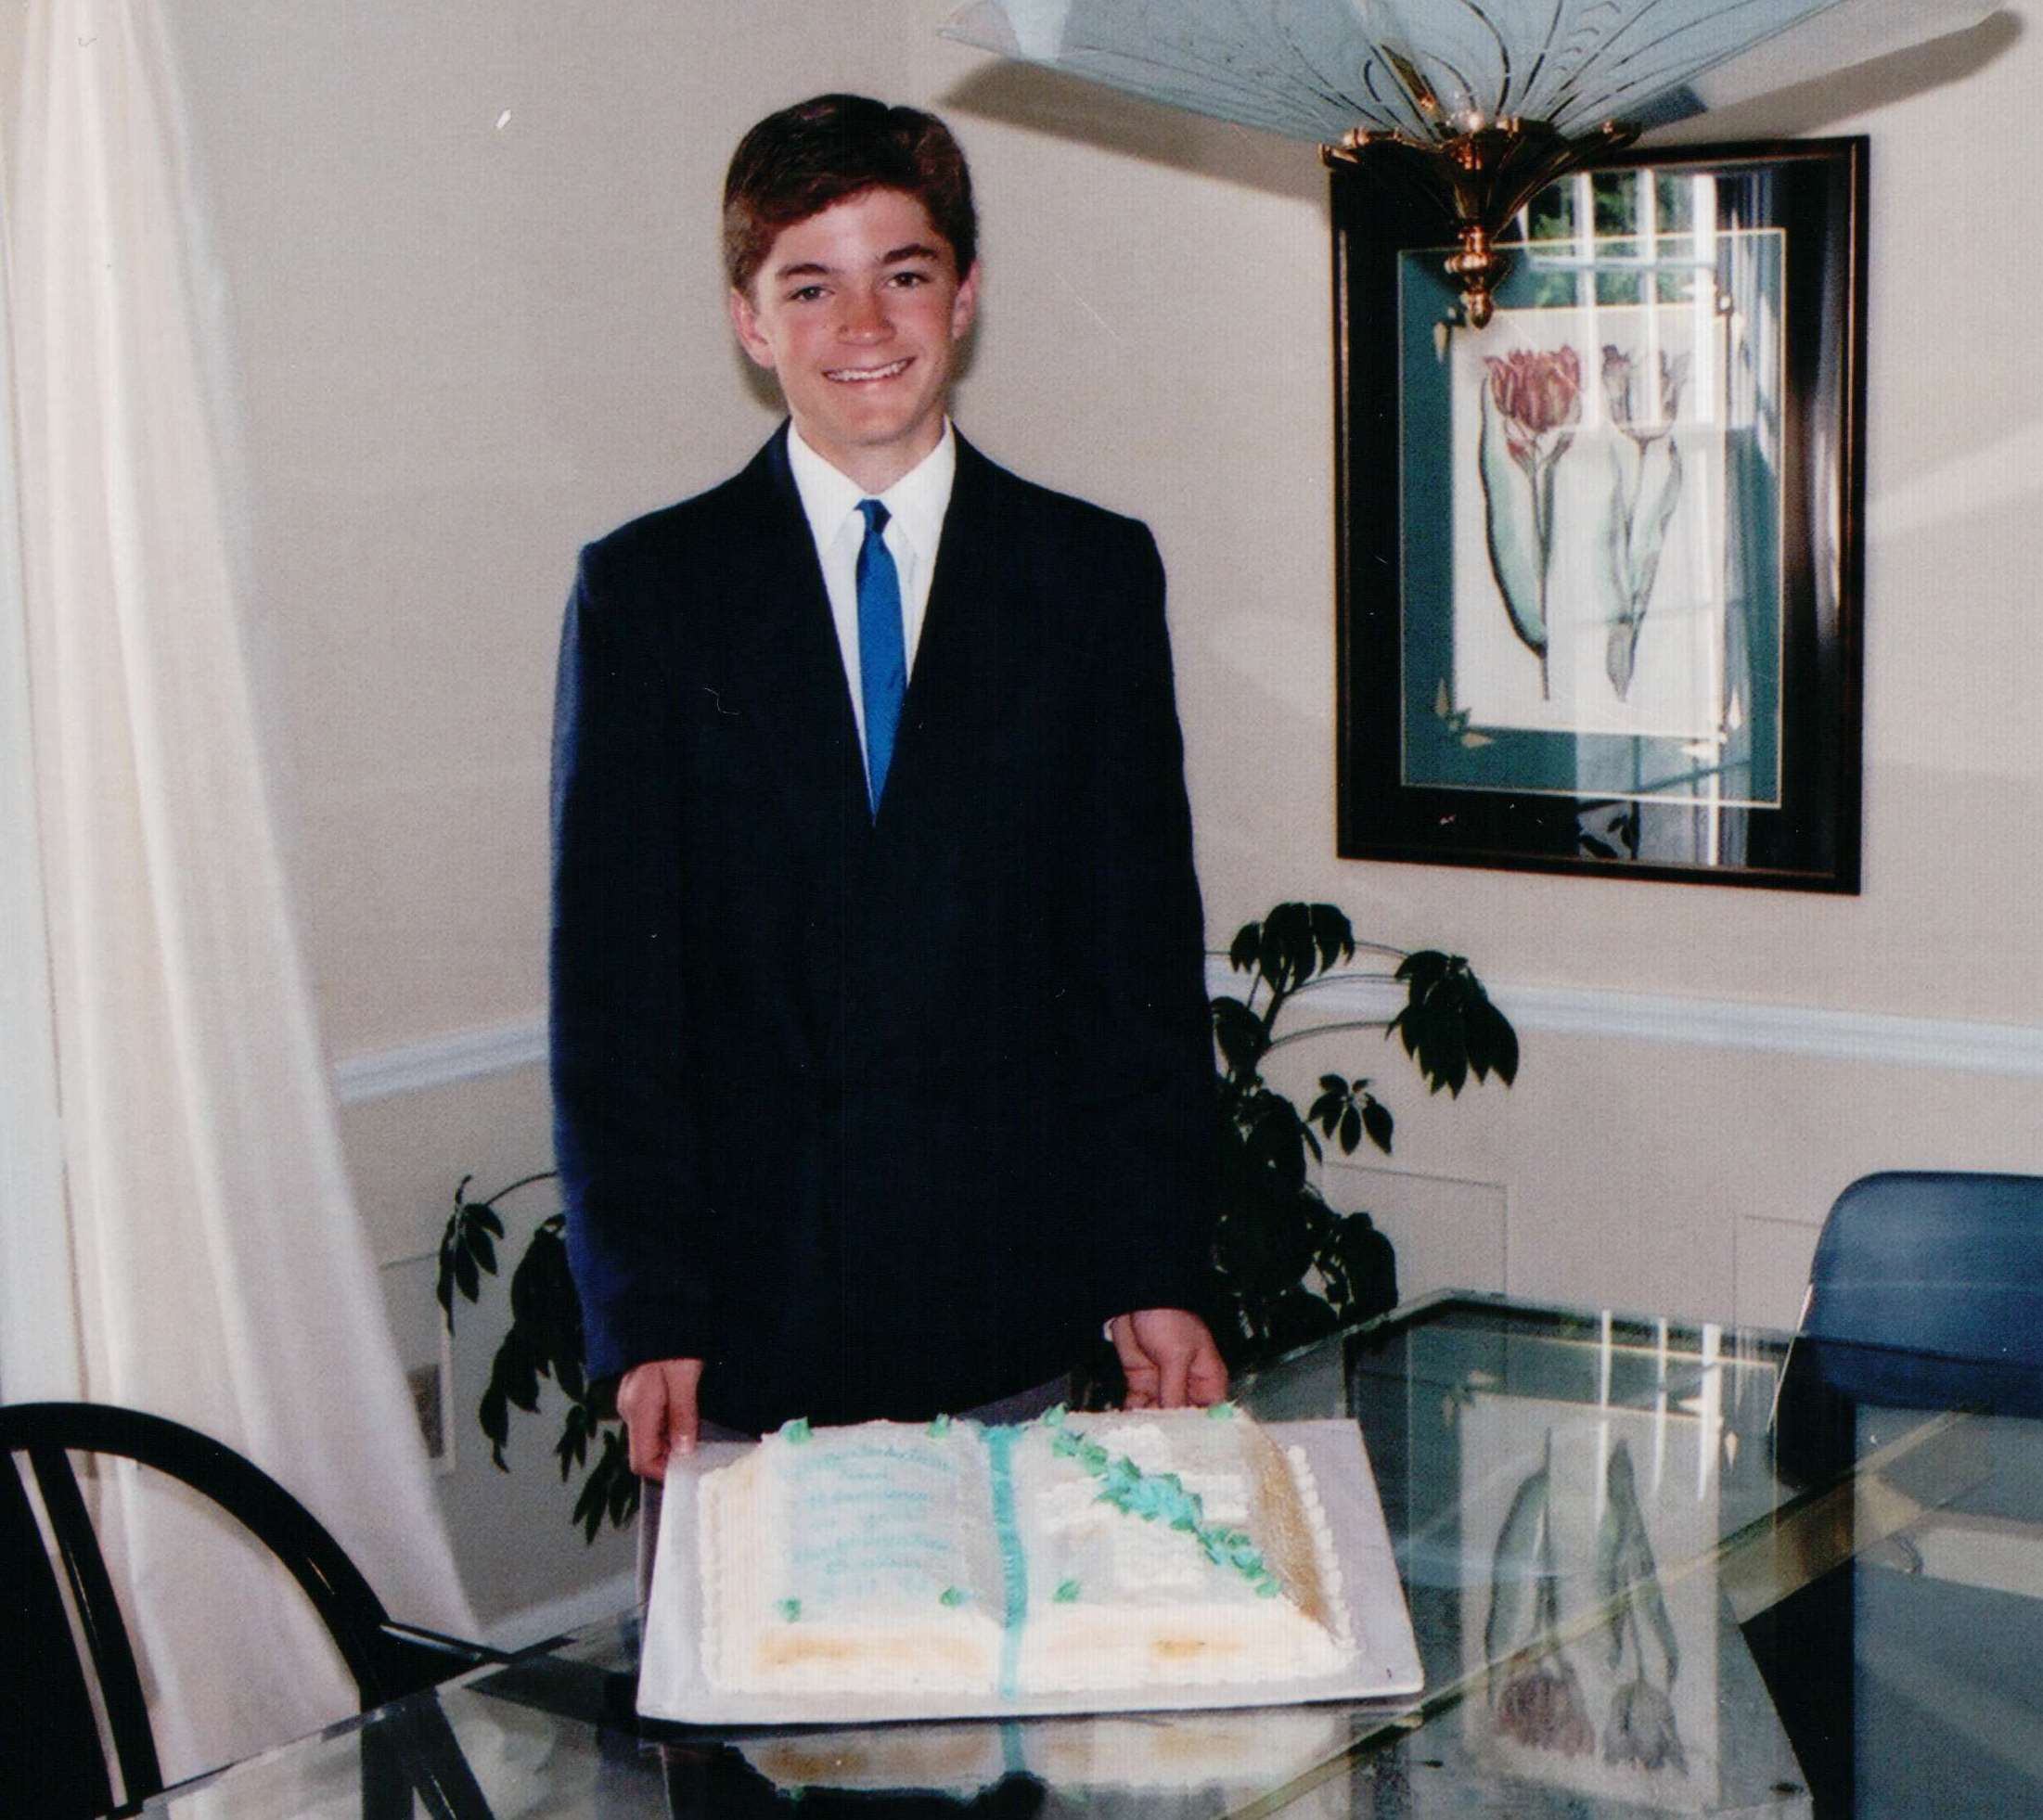 Brian on his confirmation day